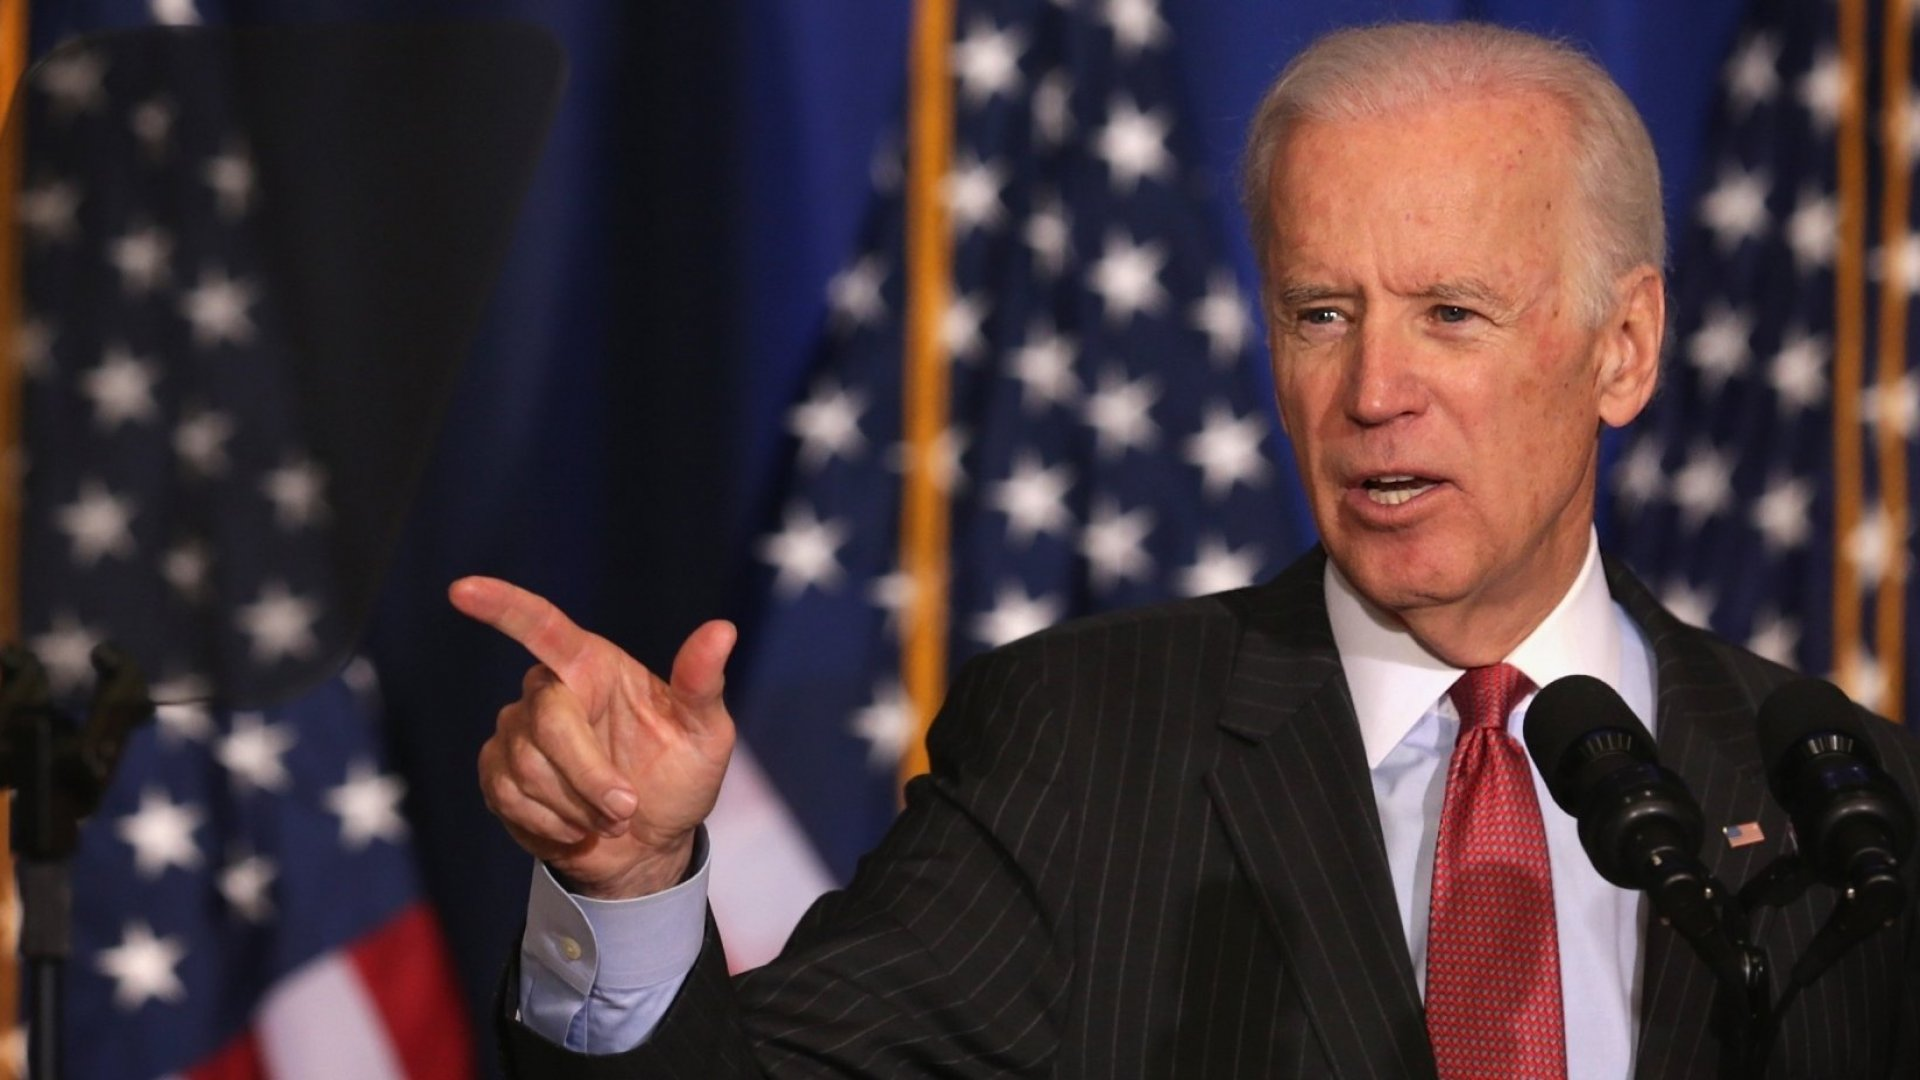 Vice President Joe Biden, pictured, is considering a run for president.